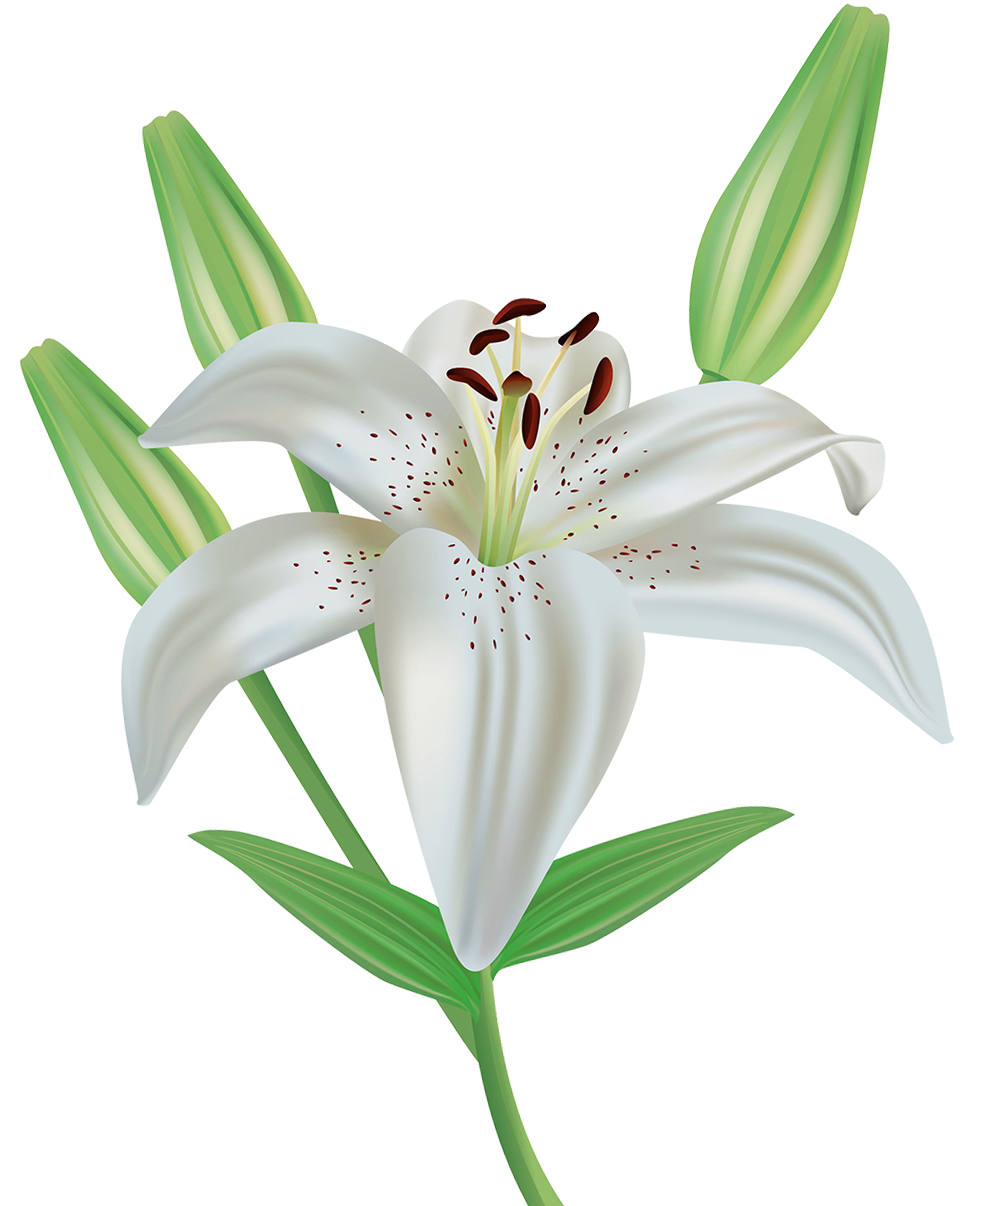 banner black and white library Flower png image gallery. Lily clipart lily name.